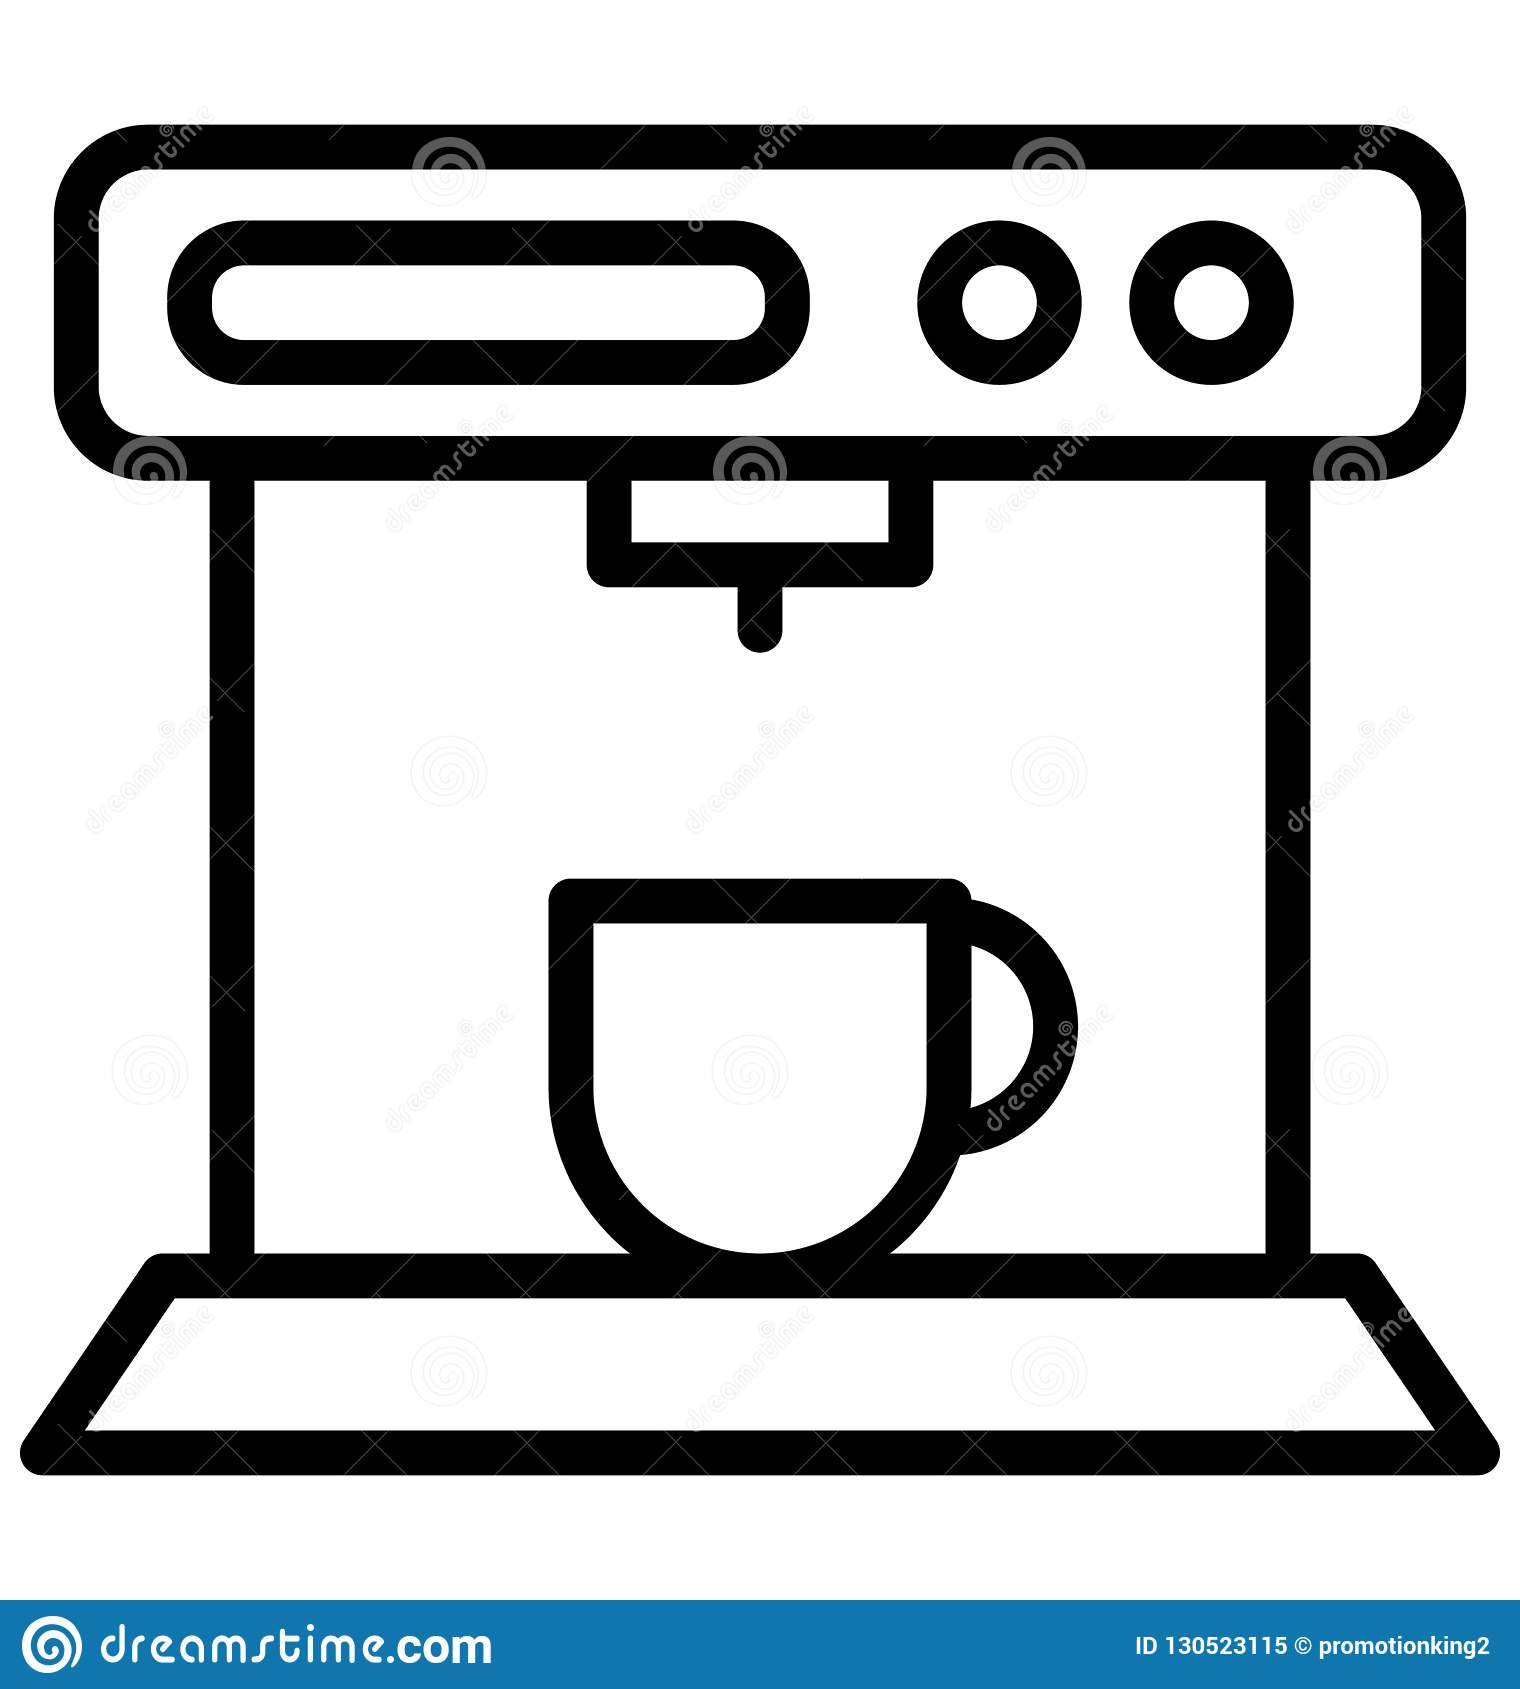 Coffee maker, espresso maker Isolated Vector Icon That can be easily edited in any size or modified.